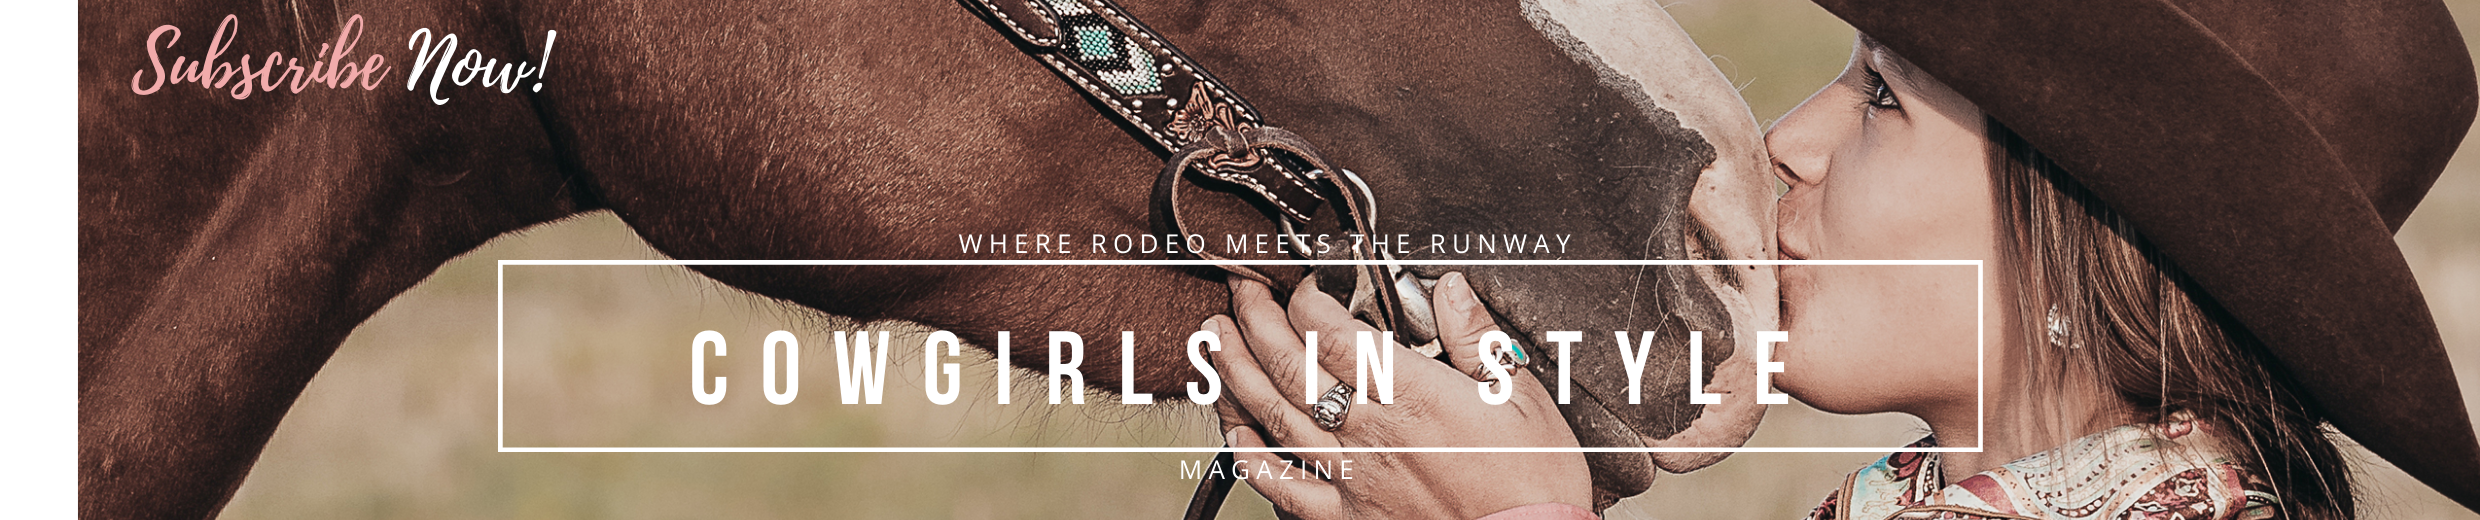 April 2017 - Cowgirls In Style Magazine